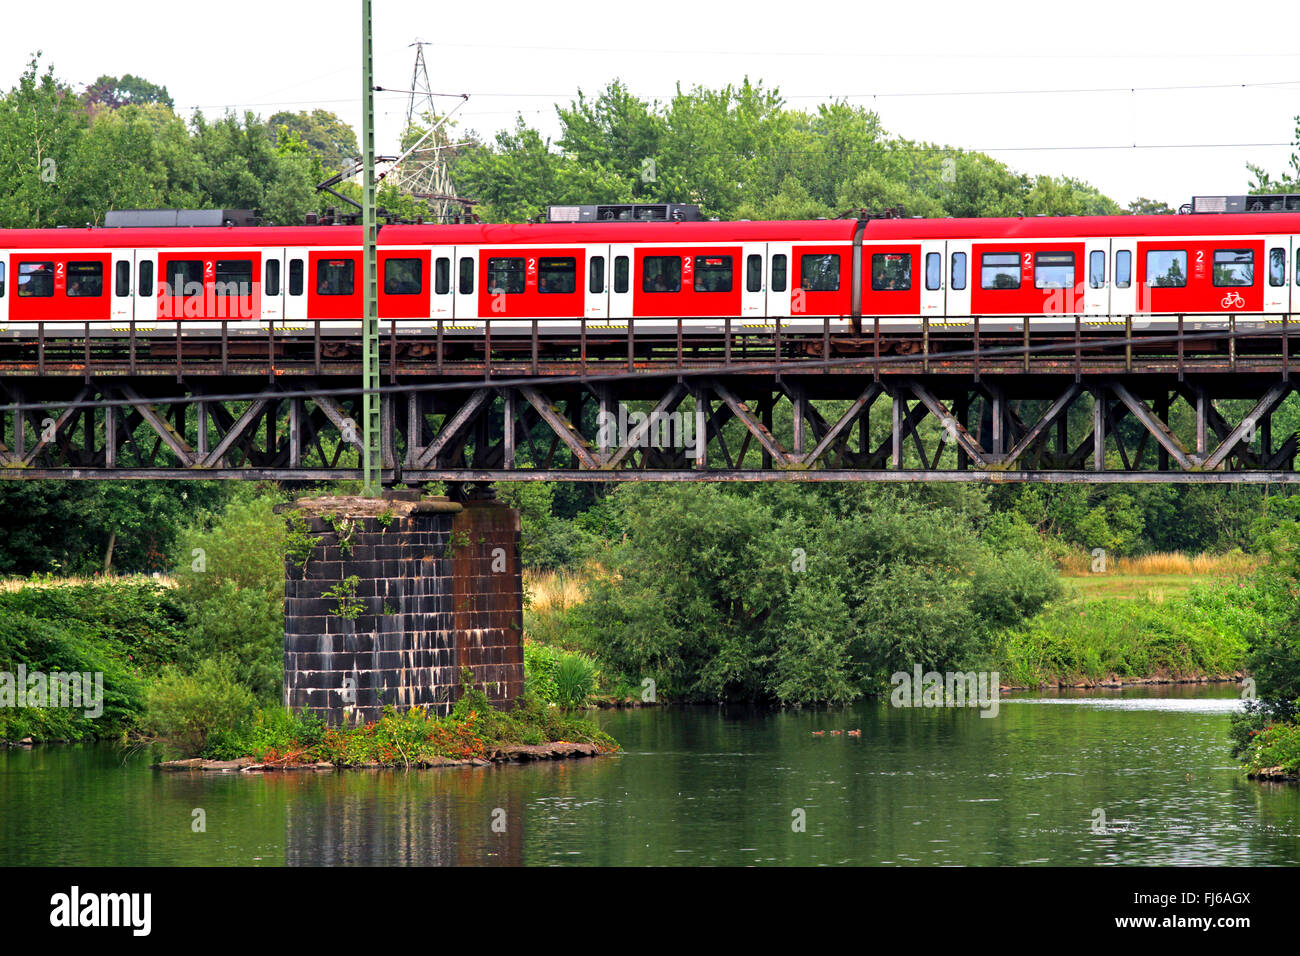 S-Bahn city train crossing the Ruhr river, Germany, North Rhine-Westphalia - Stock Image